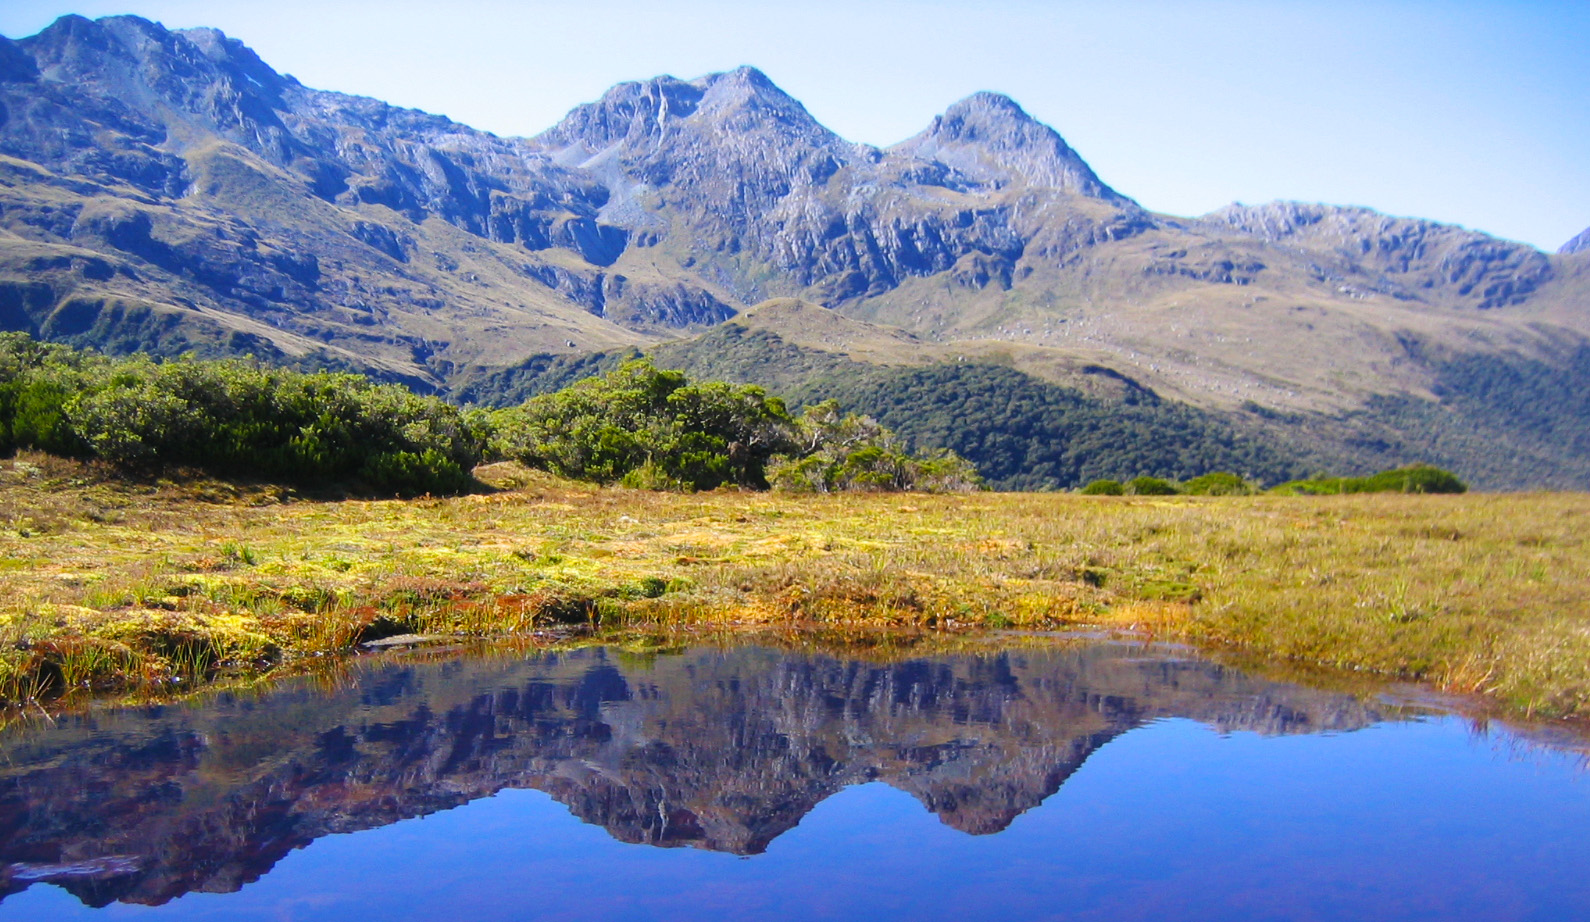 Routeburn Track : A world's top hike